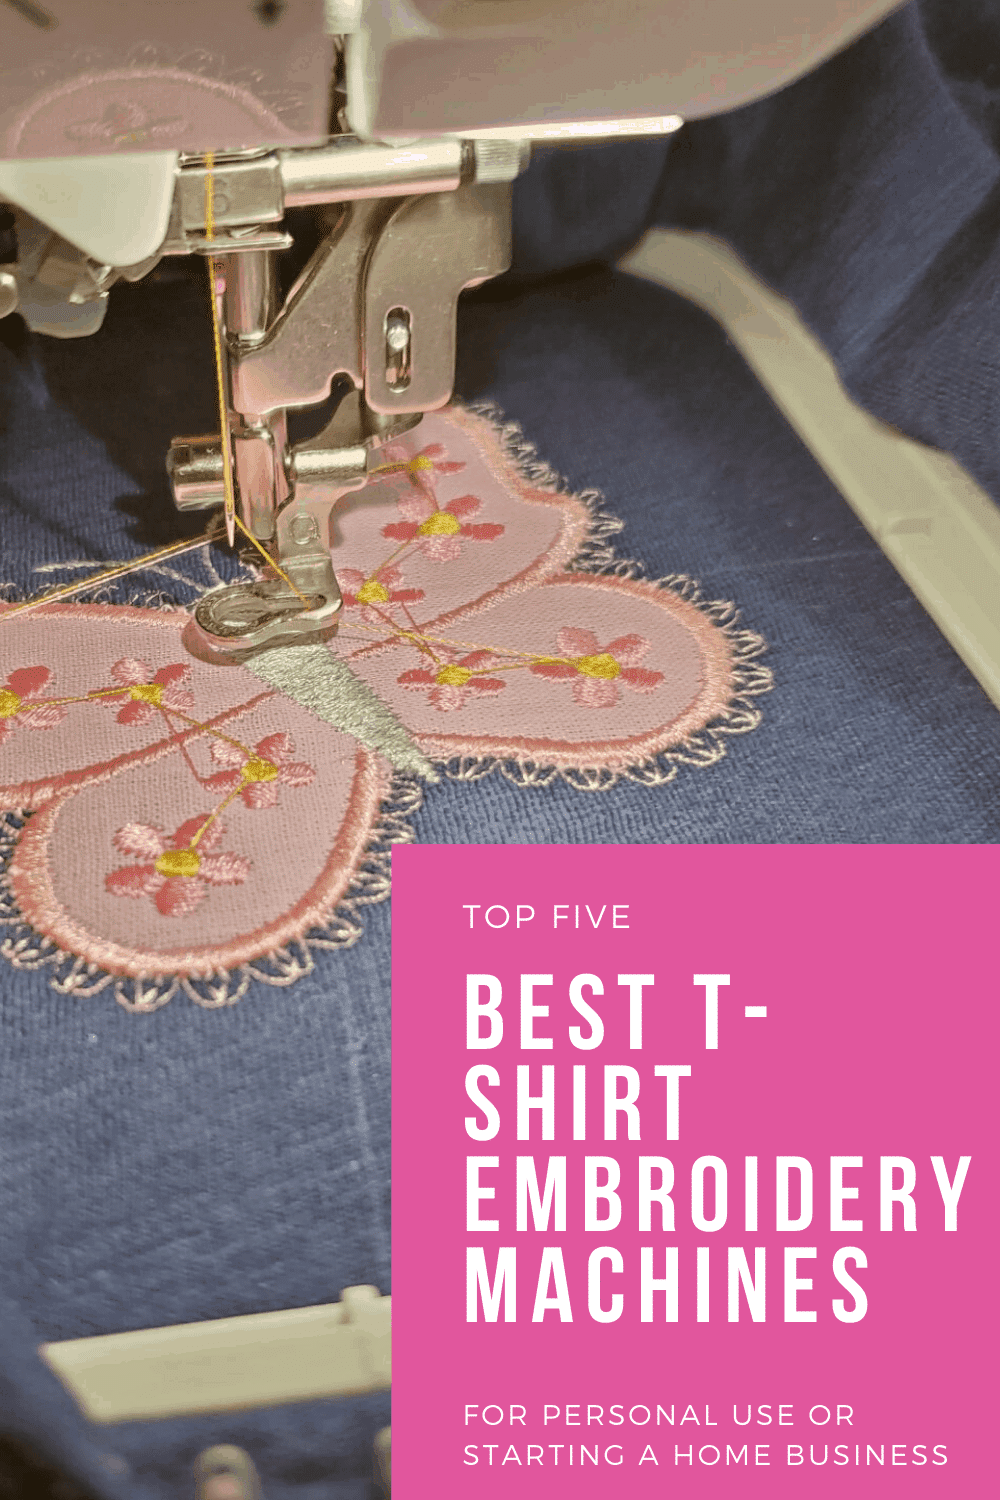 Best embroidery machine for shirts